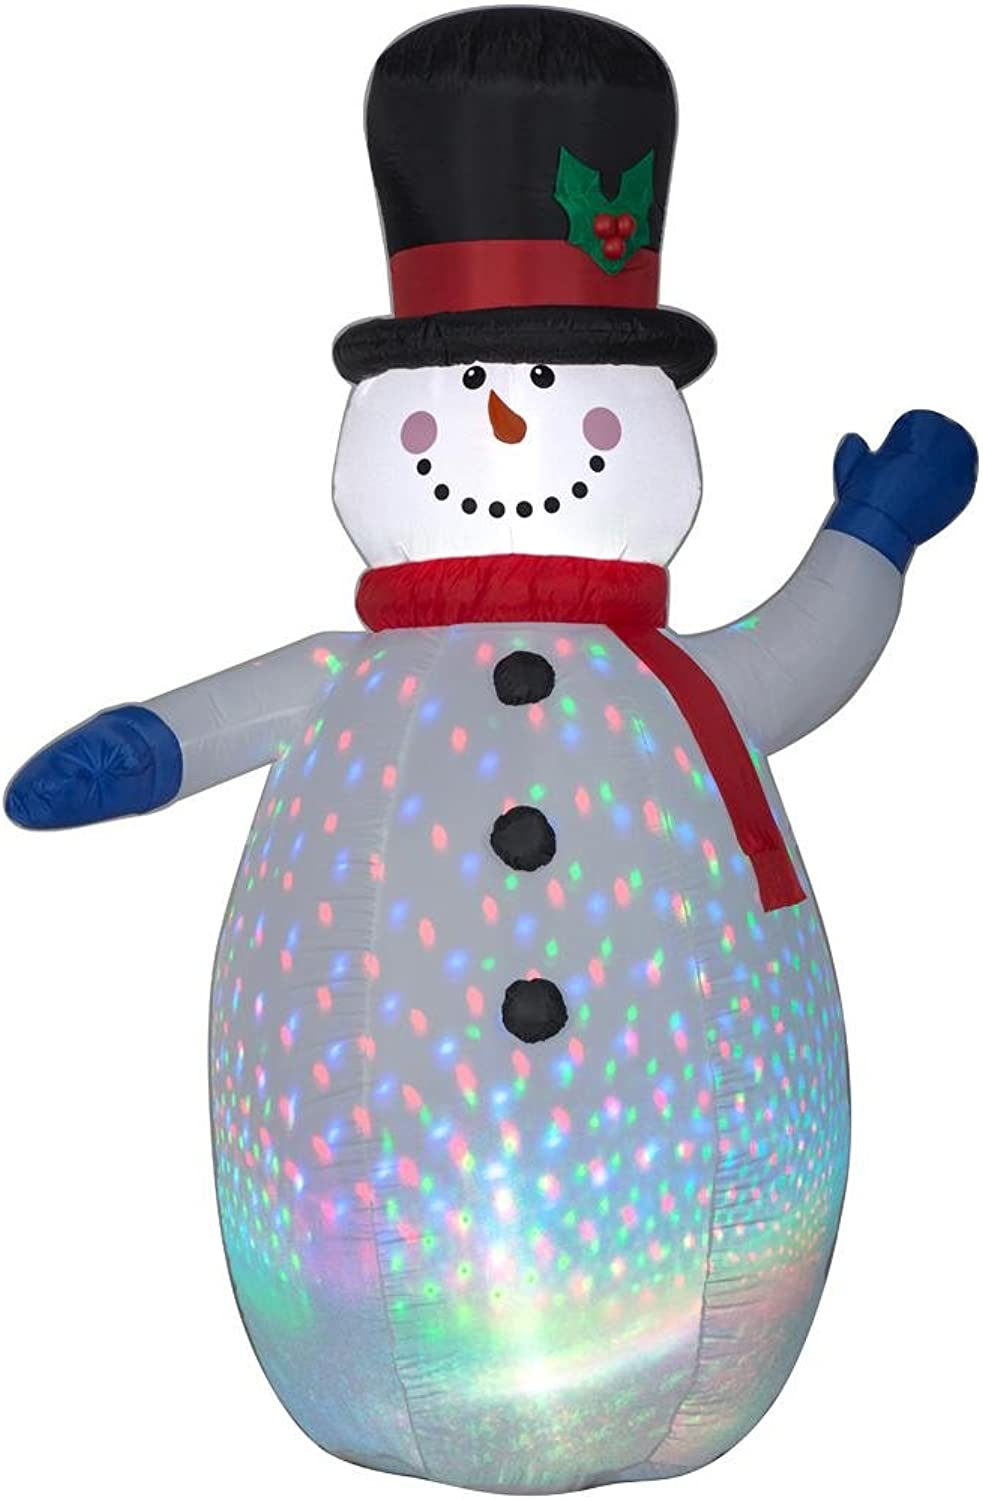 Home Accents Holiday 11993 Projection color Flash Snowman 6.5 Foot LED Light, Airblown, Inflatable